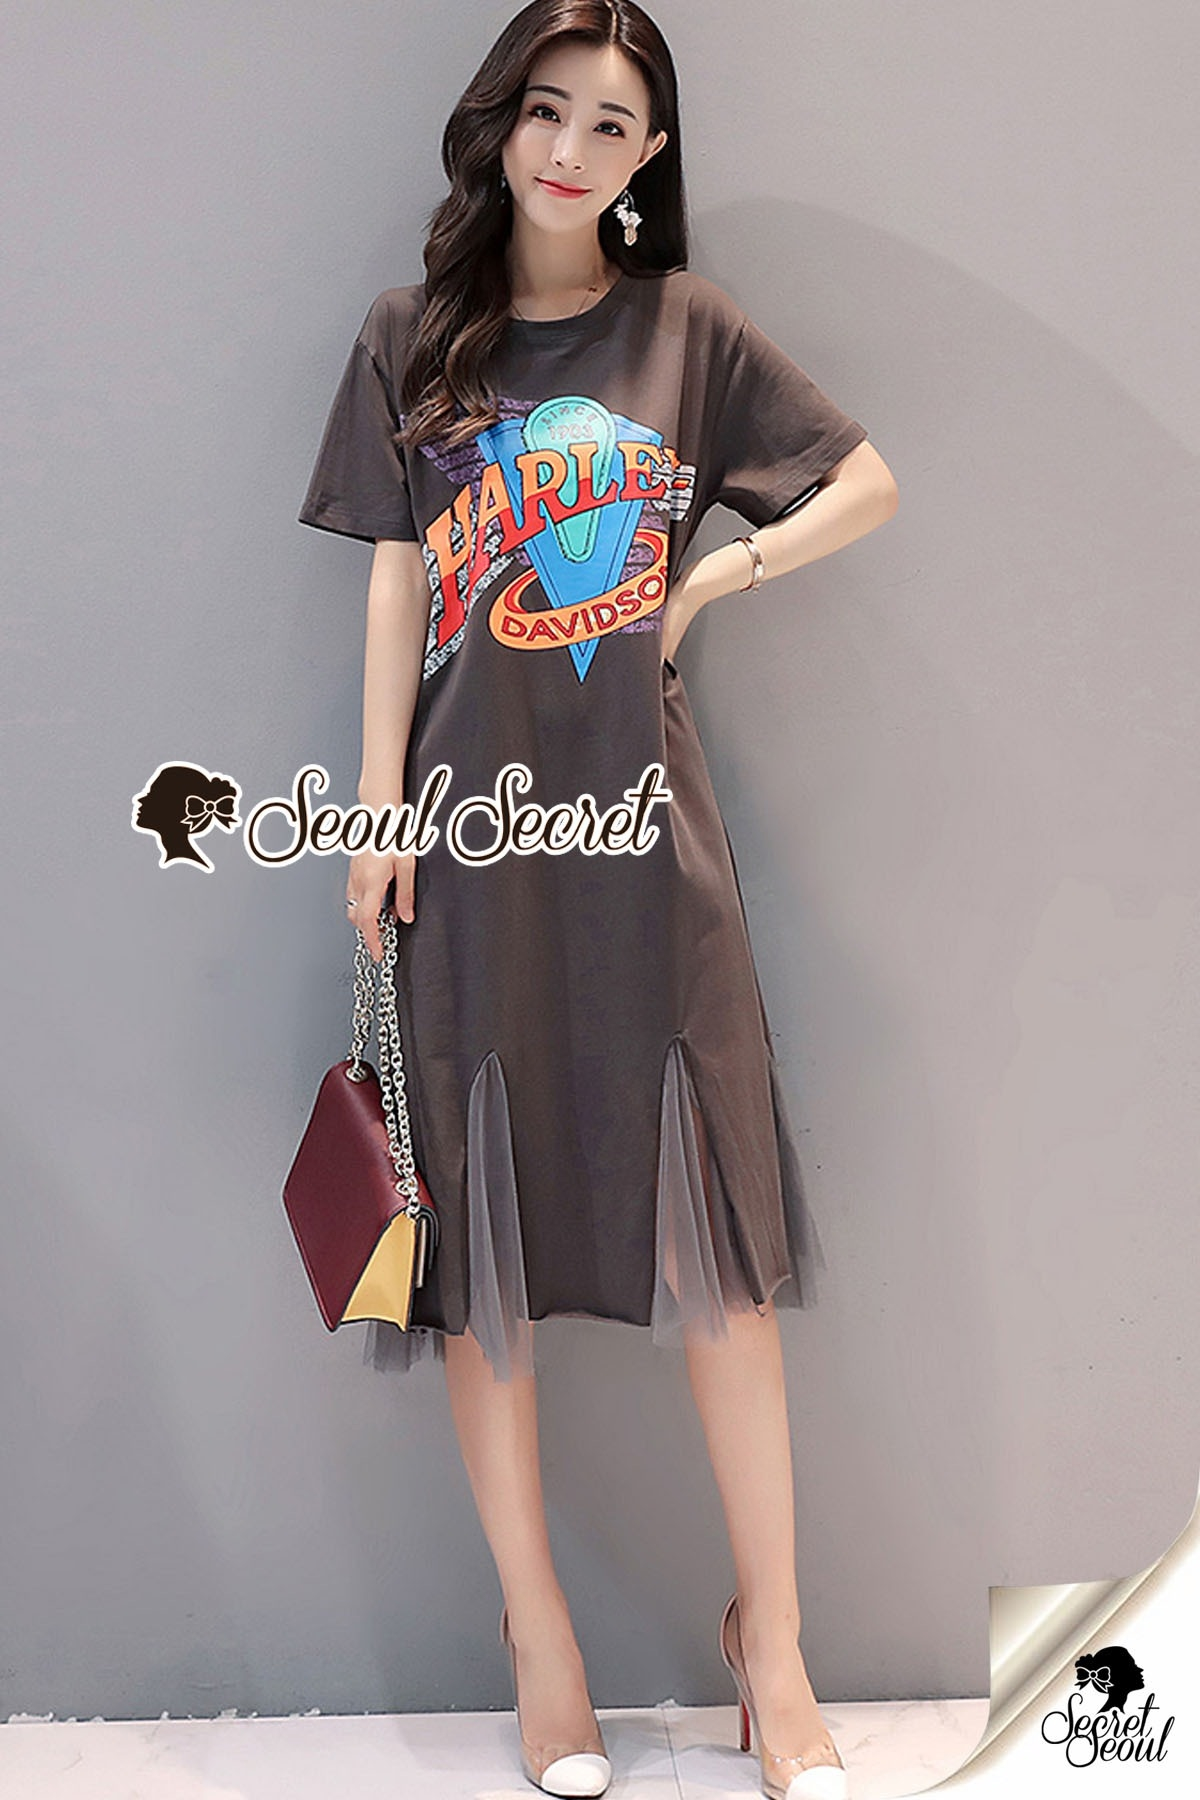 Harley Black&Brown Dress Cutting Off Tail